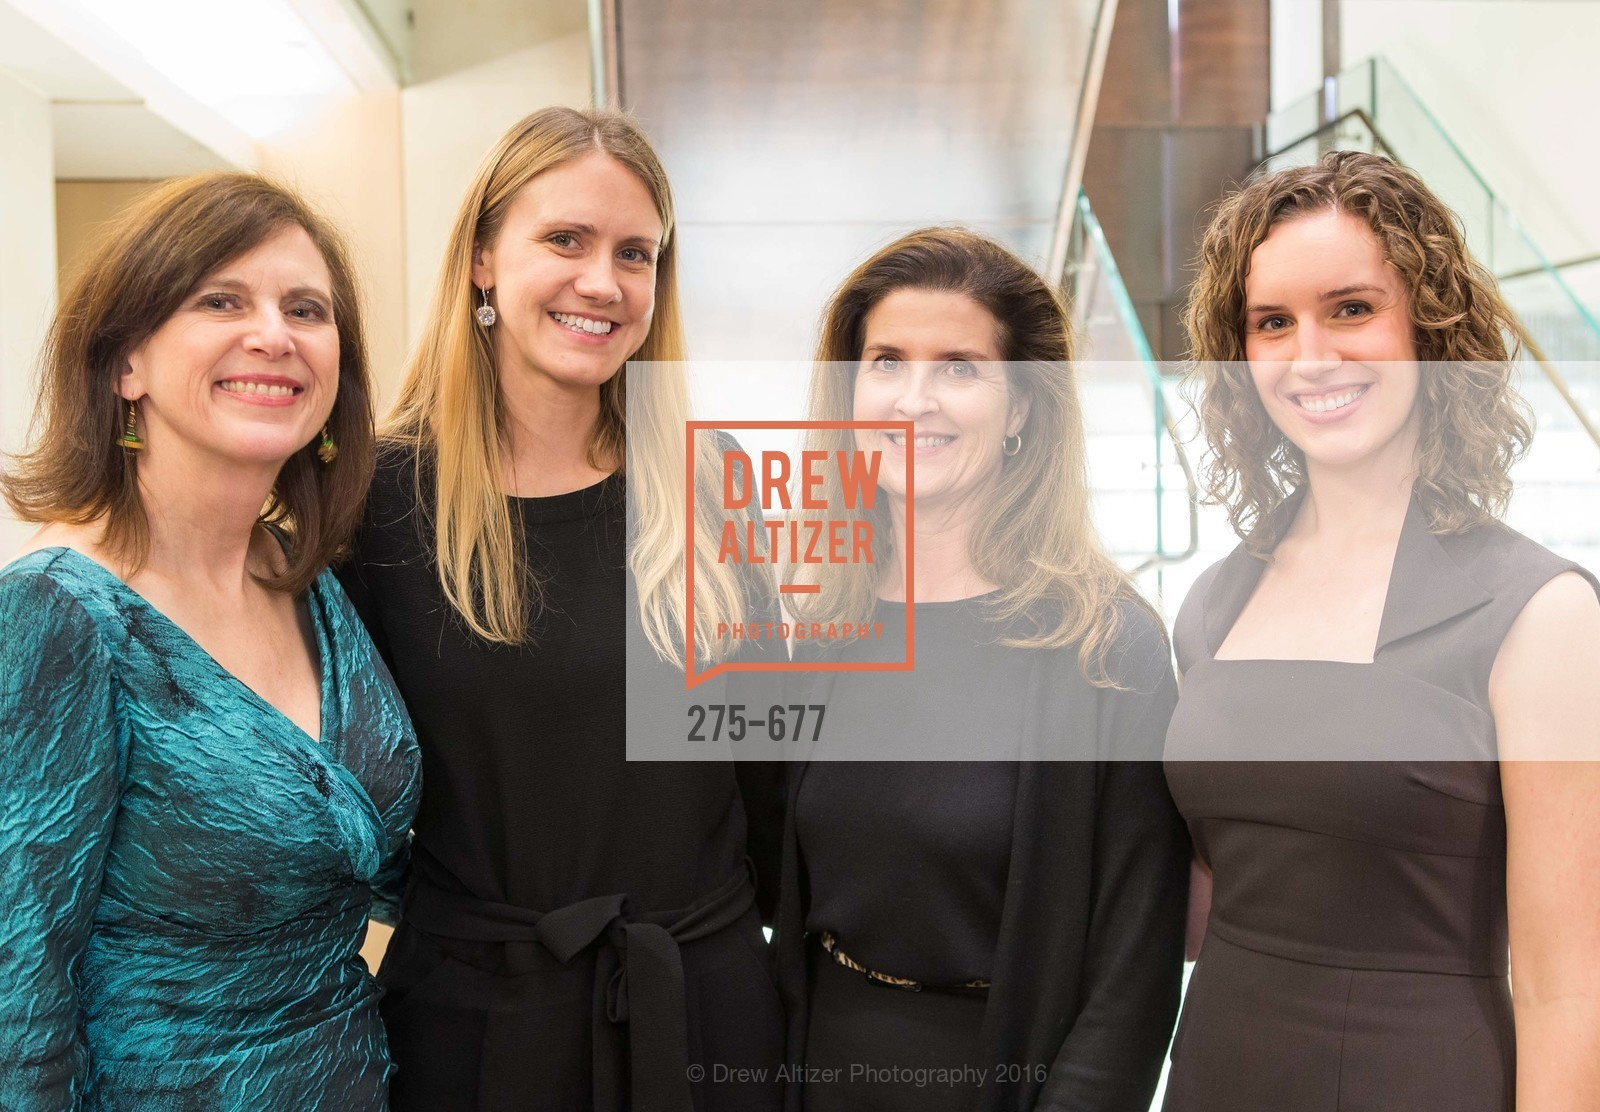 Amy Drew, Jennifer Mewha, Ingrid Roman, Beverley Siri-Borelli, Bulgari Hosts The 2016 Ballet Gala Patrons Party, Bulgari. 200 Stockton st, January 7th, 2016,Drew Altizer, Drew Altizer Photography, full-service agency, private events, San Francisco photographer, photographer california